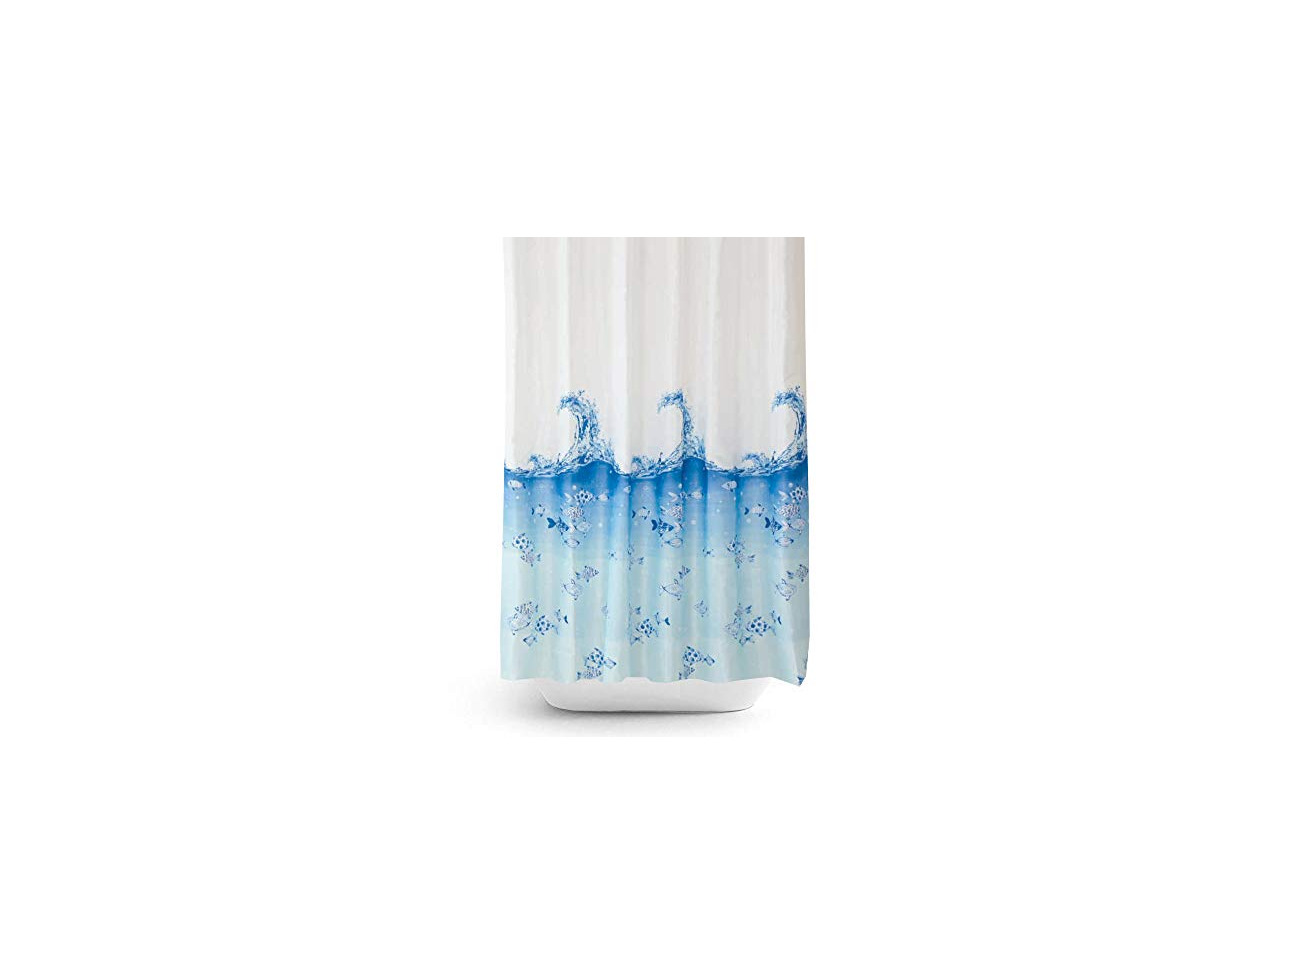 Buy Tropik Home Fabric Shower Curtain With Fishes Extra